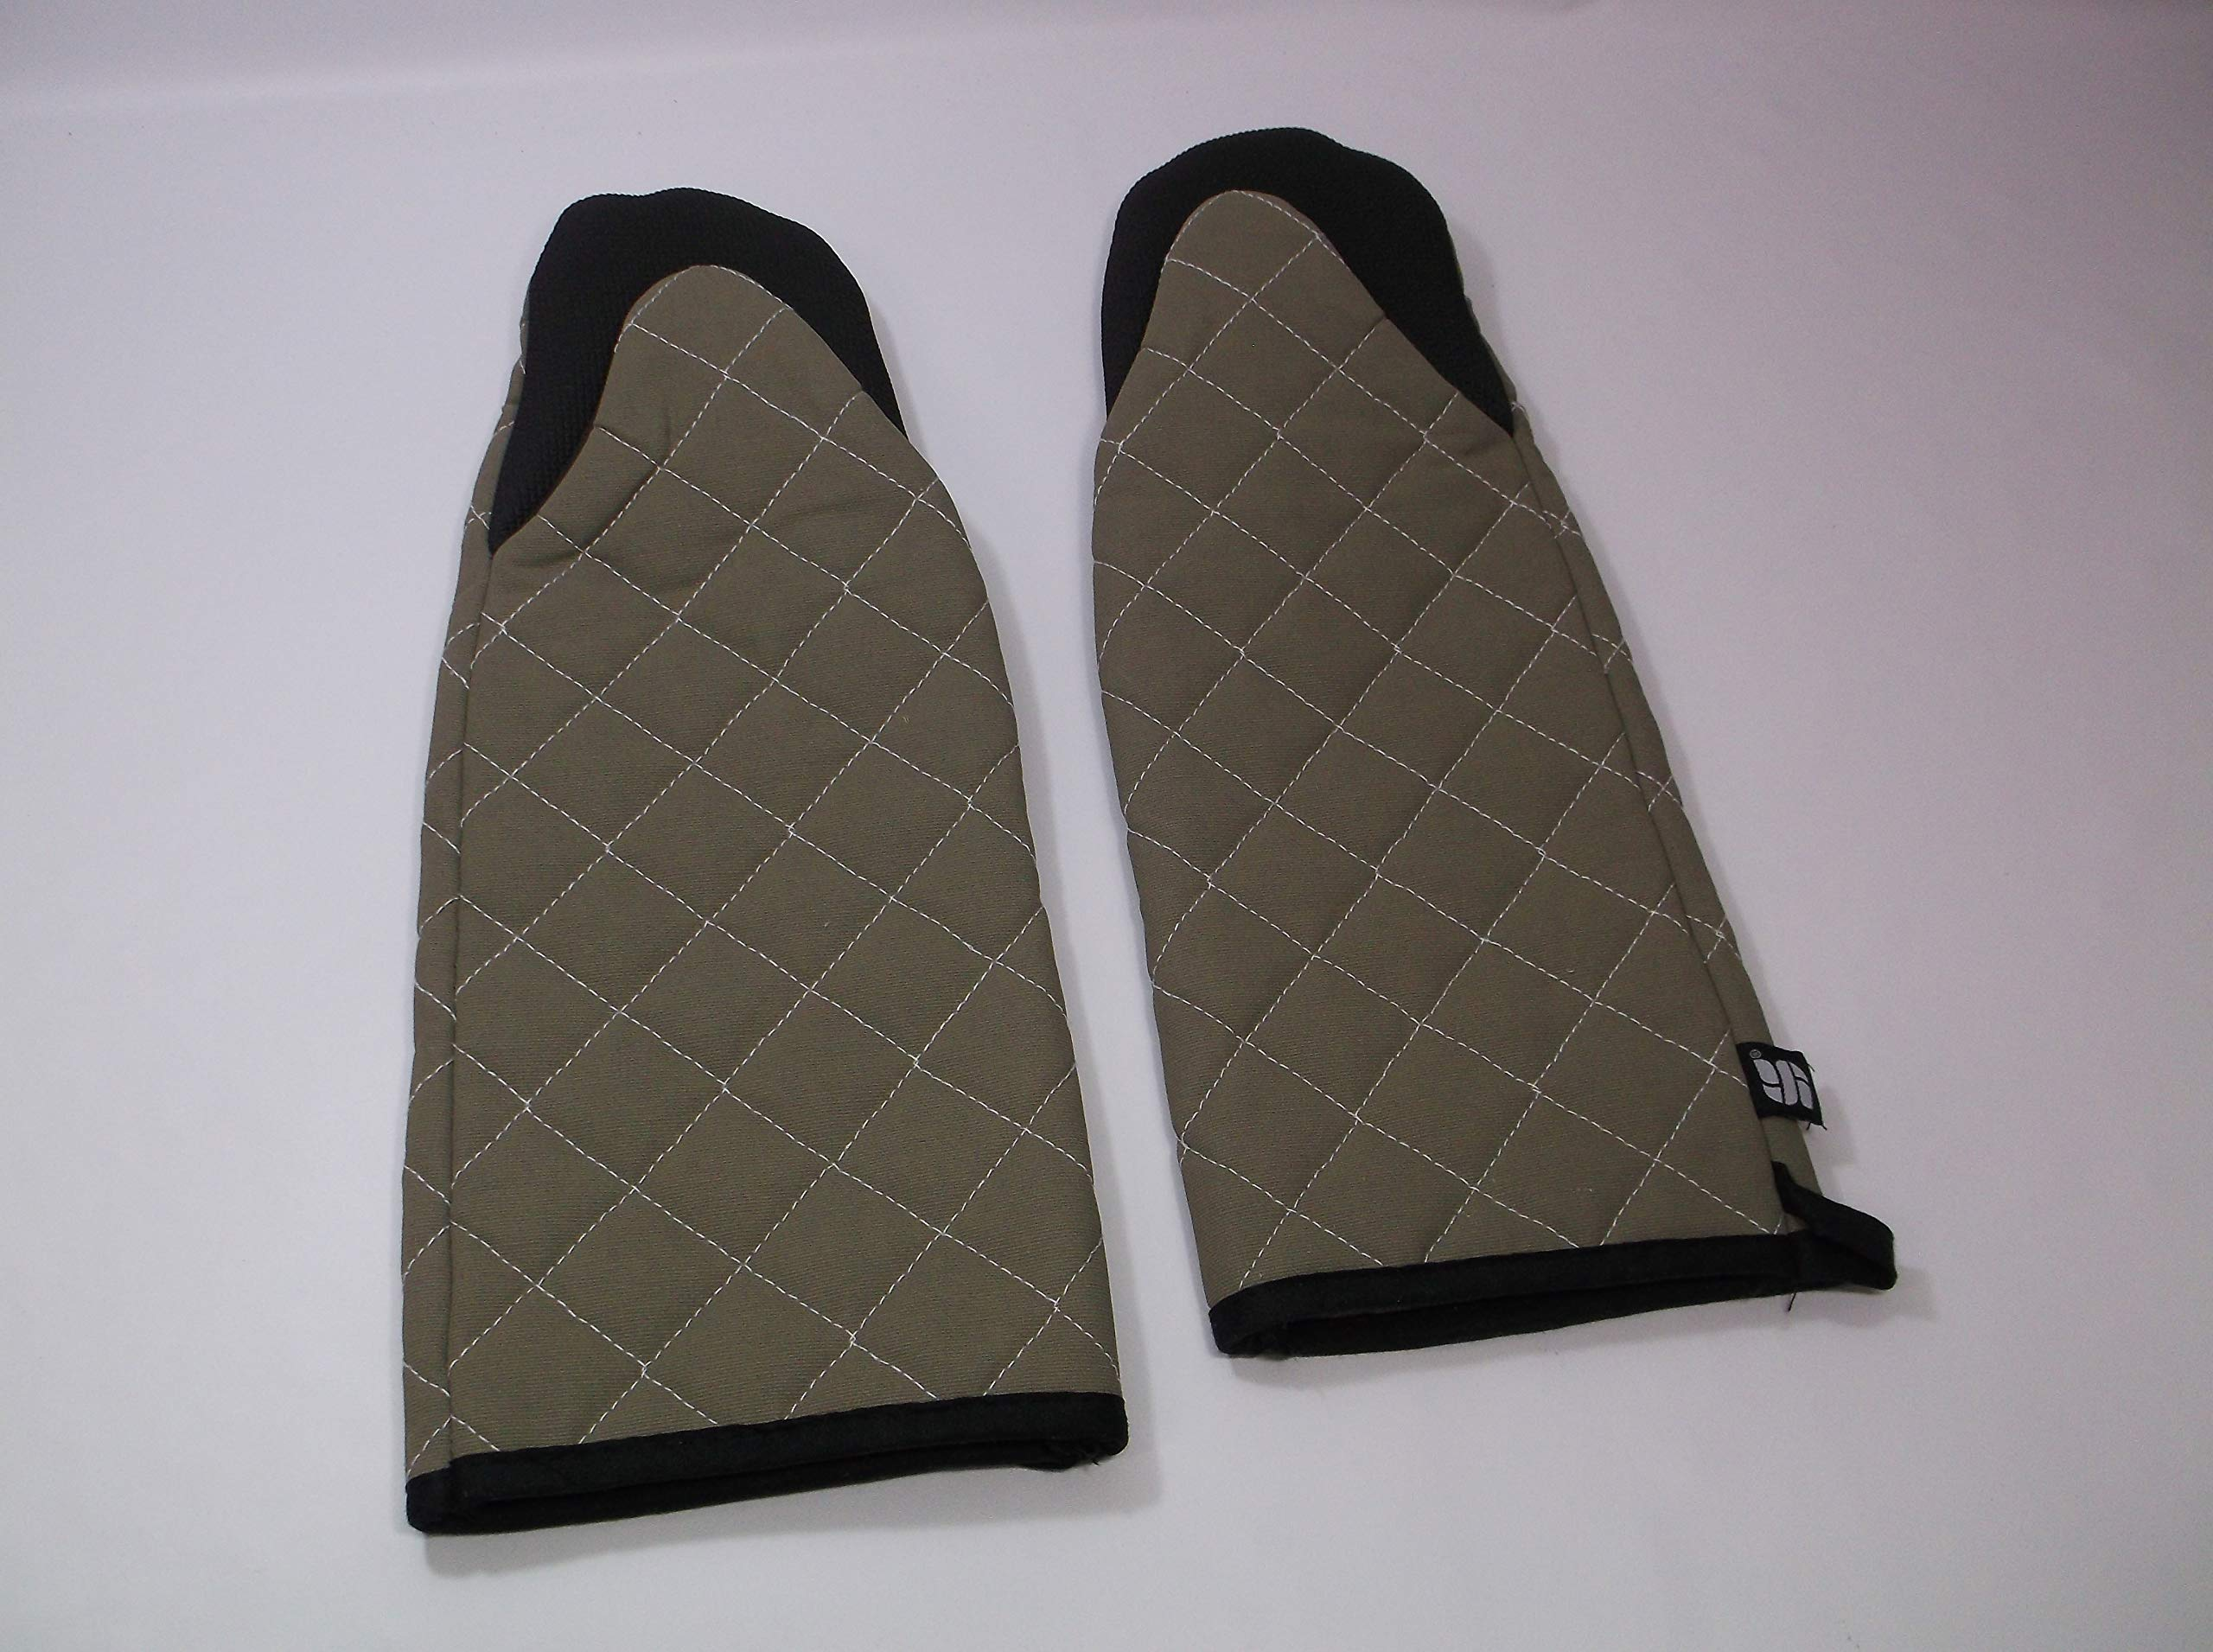 San Jamar 810PM17 Set of 2 - (2) Puppet Style Oven Mitts 17 inch 500 Degrees F Resistance Cotton Neoprene - Brand New, lot of 2 restaurant bakery by San Jamar (Image #2)